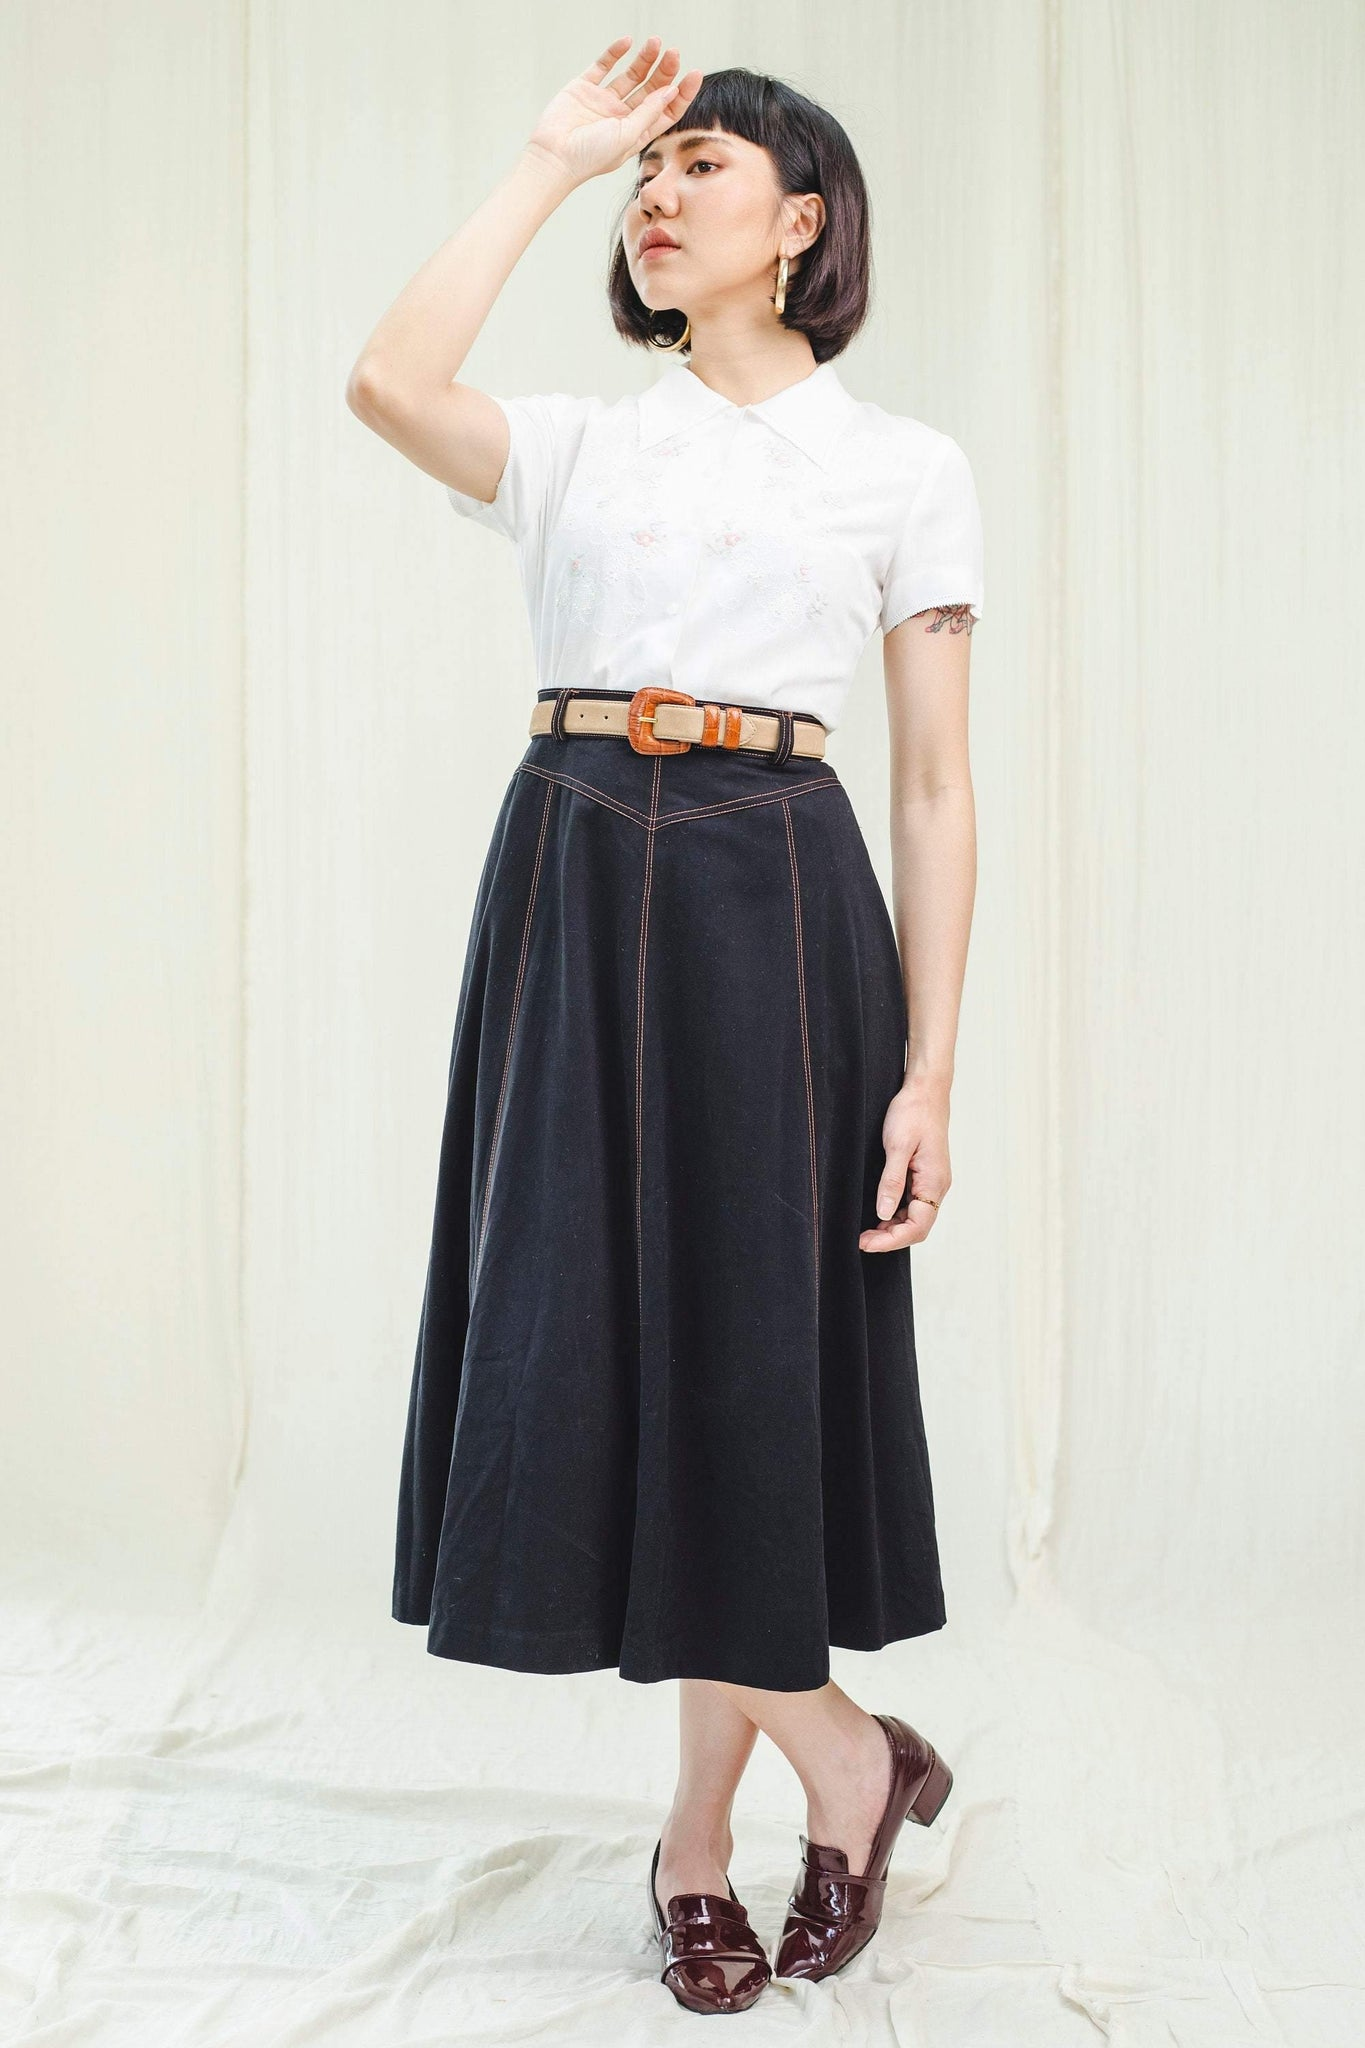 Dark denim vintage skirt